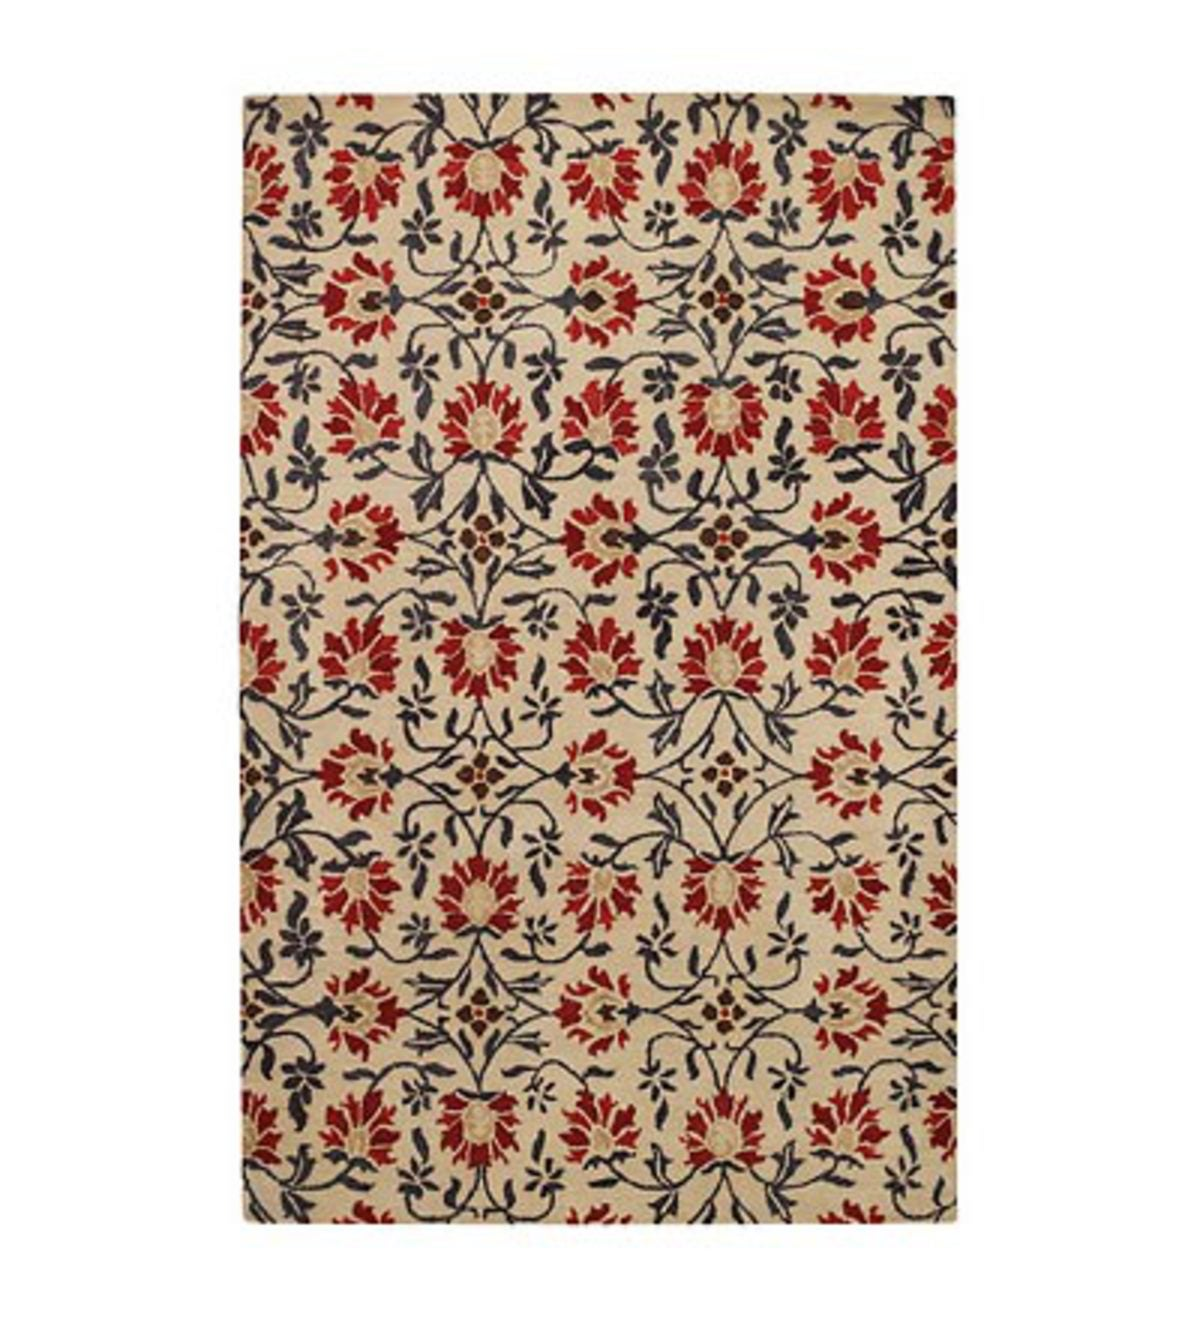 8' x 10' Charming Suzani Hand-Tufted Wool Area Rug - Red Multi